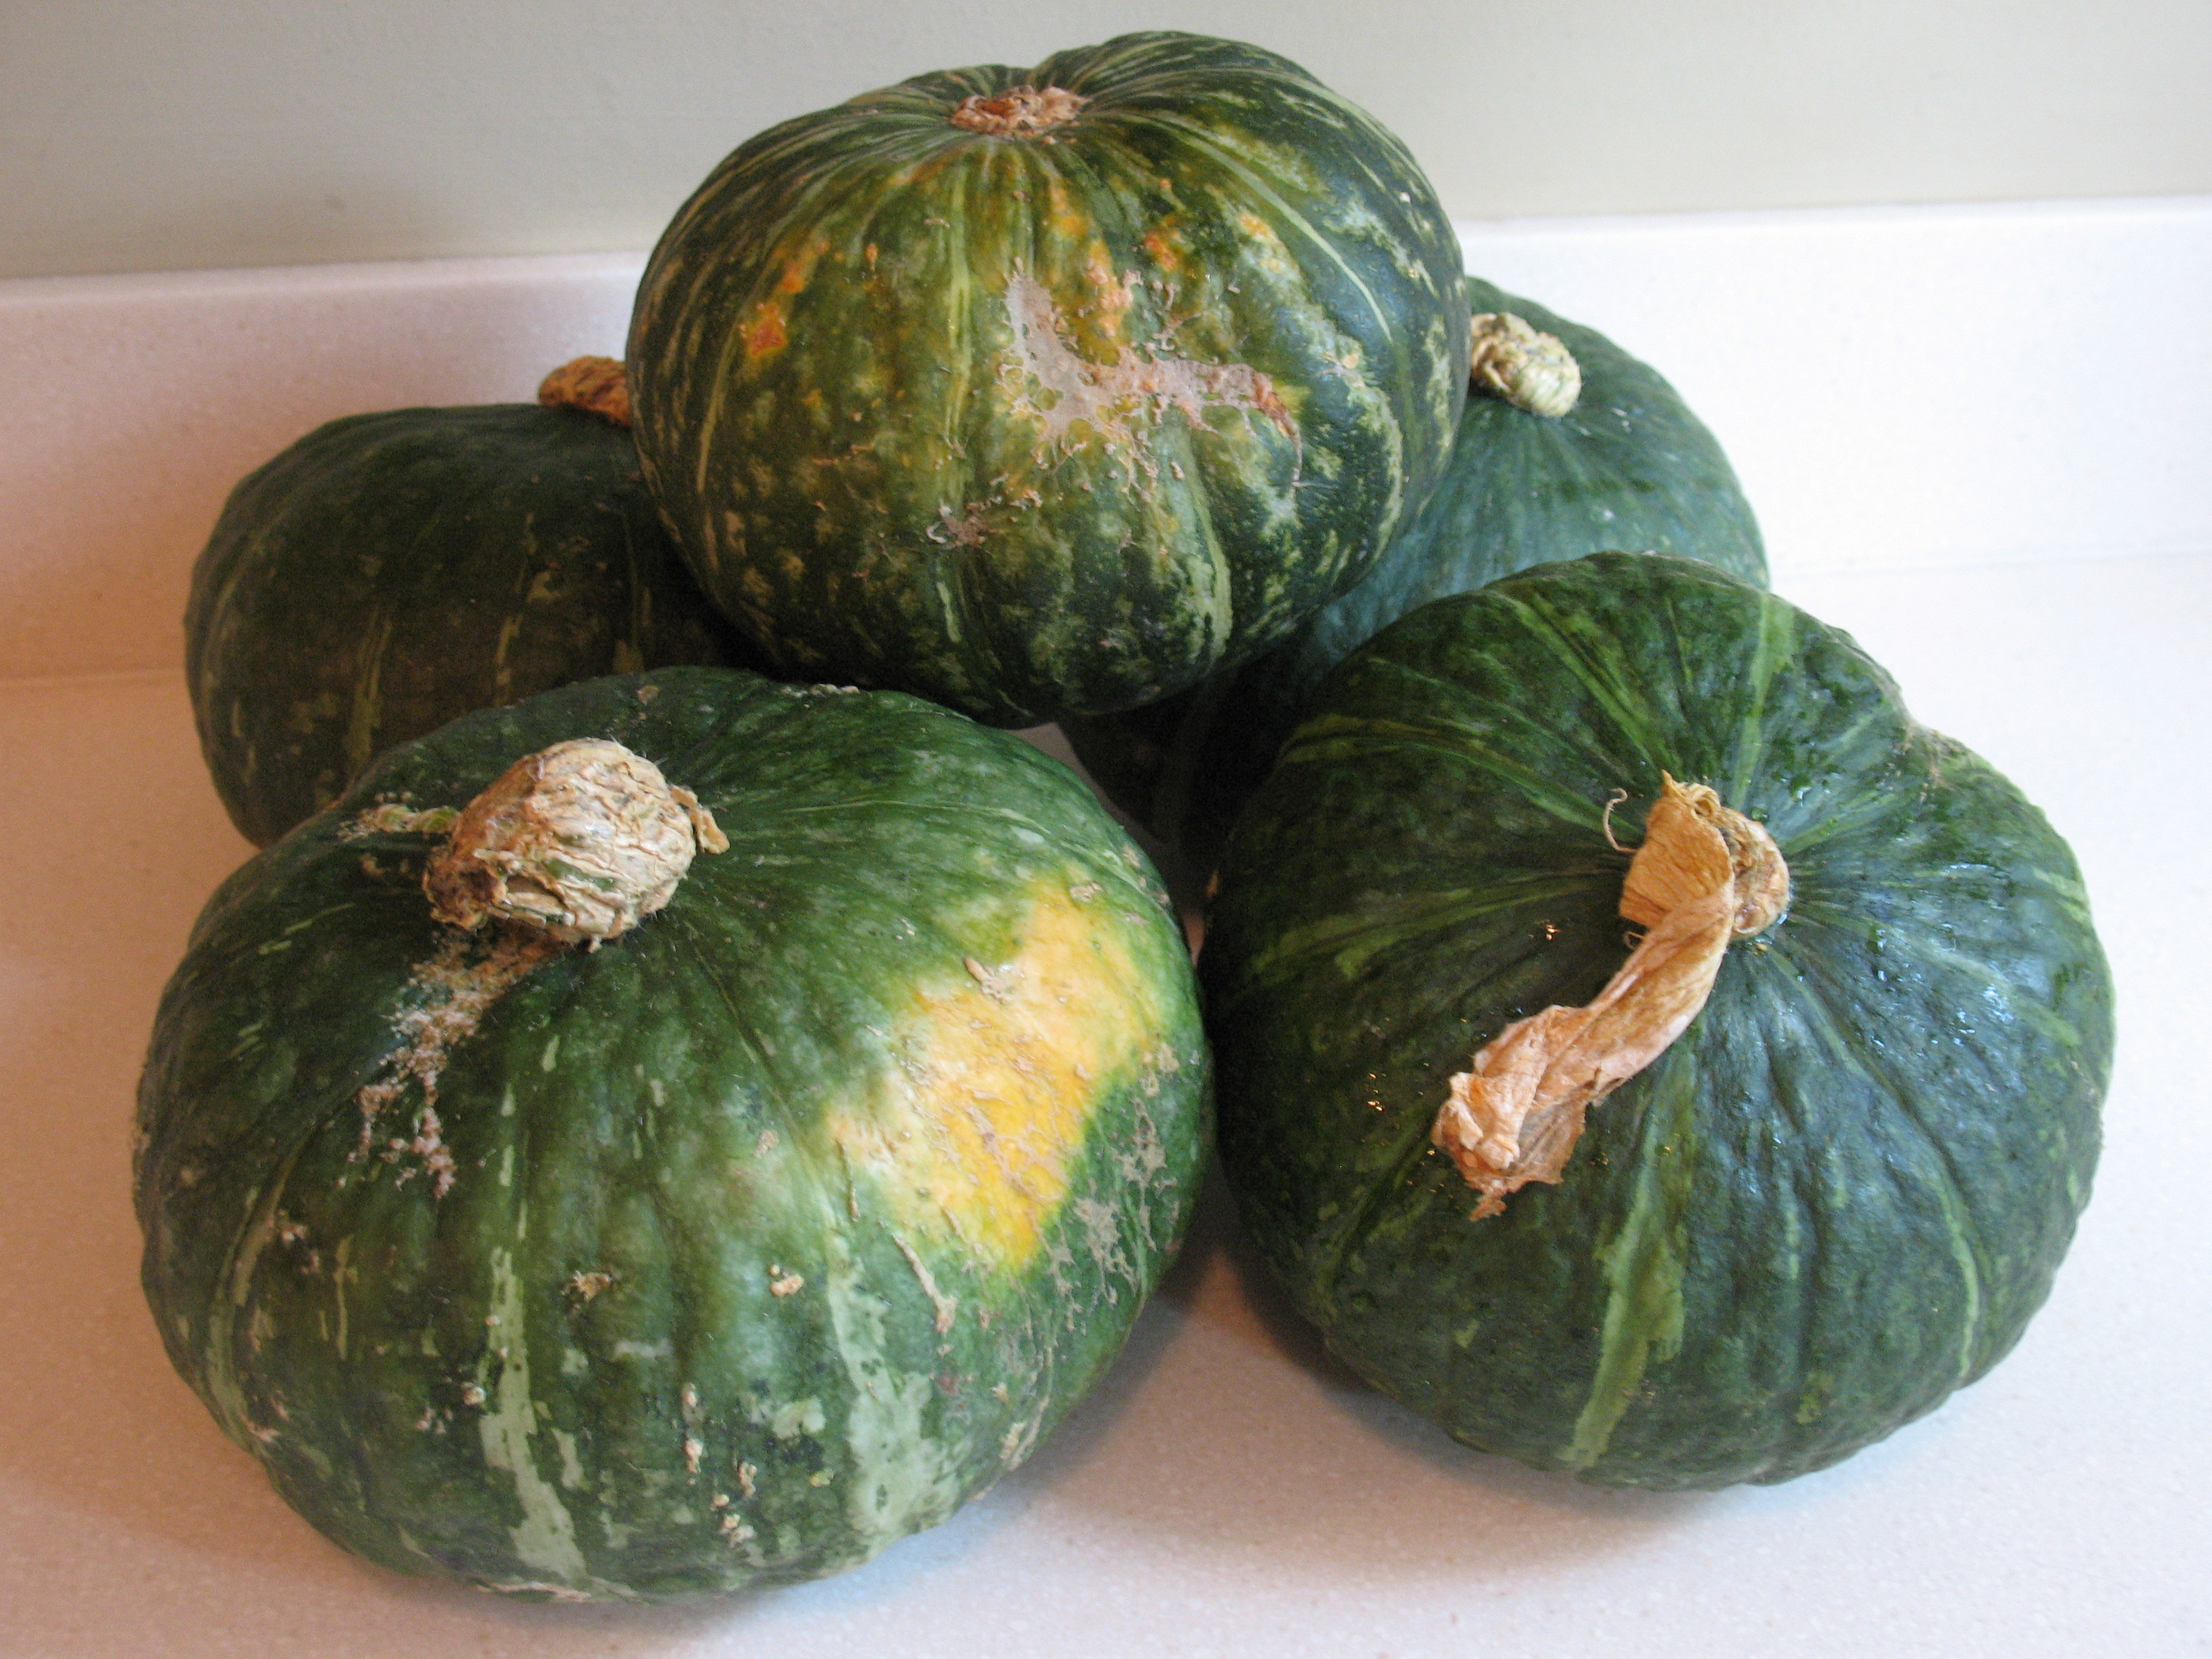 Once you go kabocha, you never go back.  Bye bye butternut!